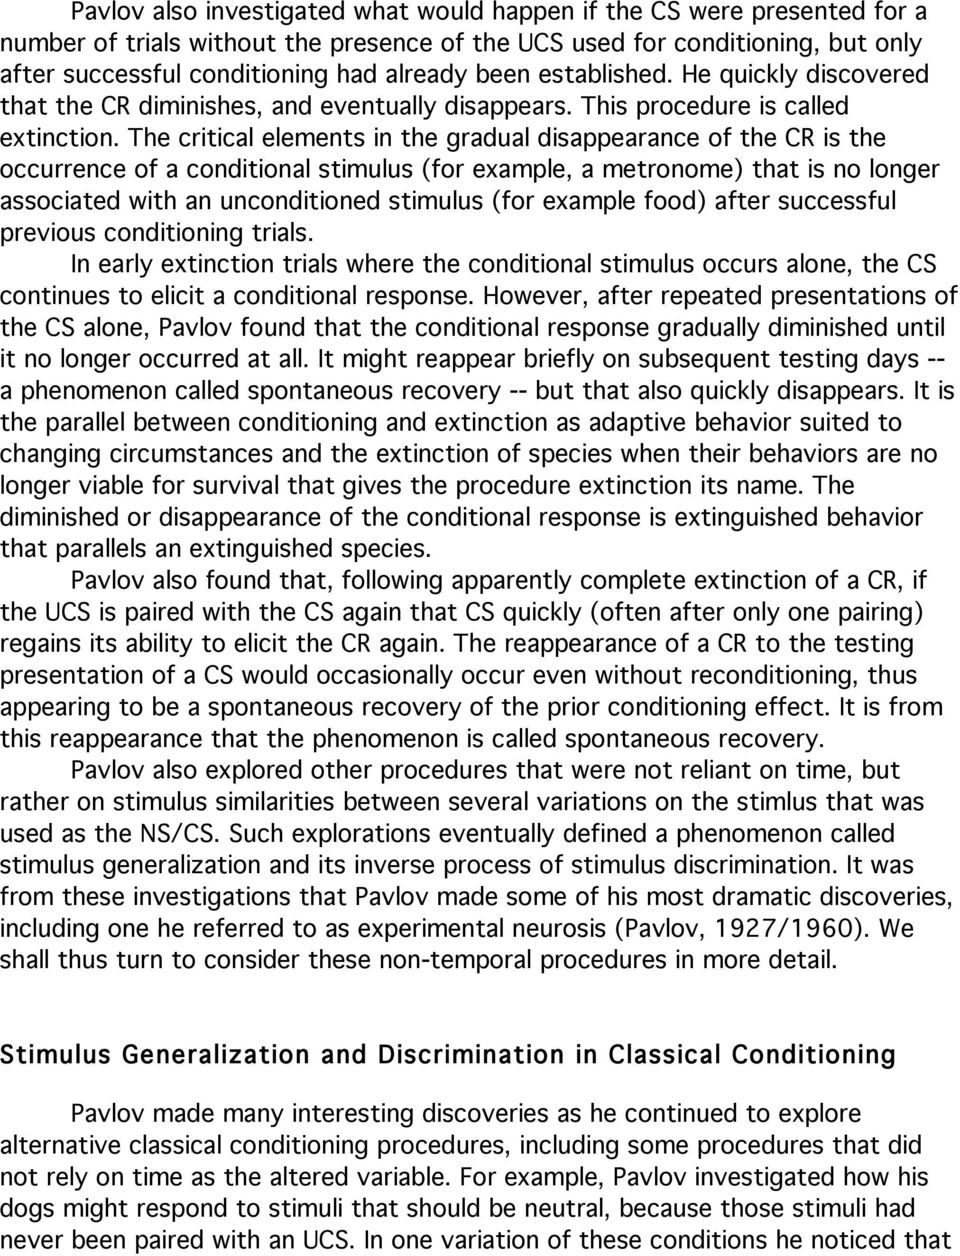 The critical elements in the gradual disappearance of the CR is the occurrence of a conditional stimulus (for example, a metronome) that is no longer associated with an unconditioned stimulus (for